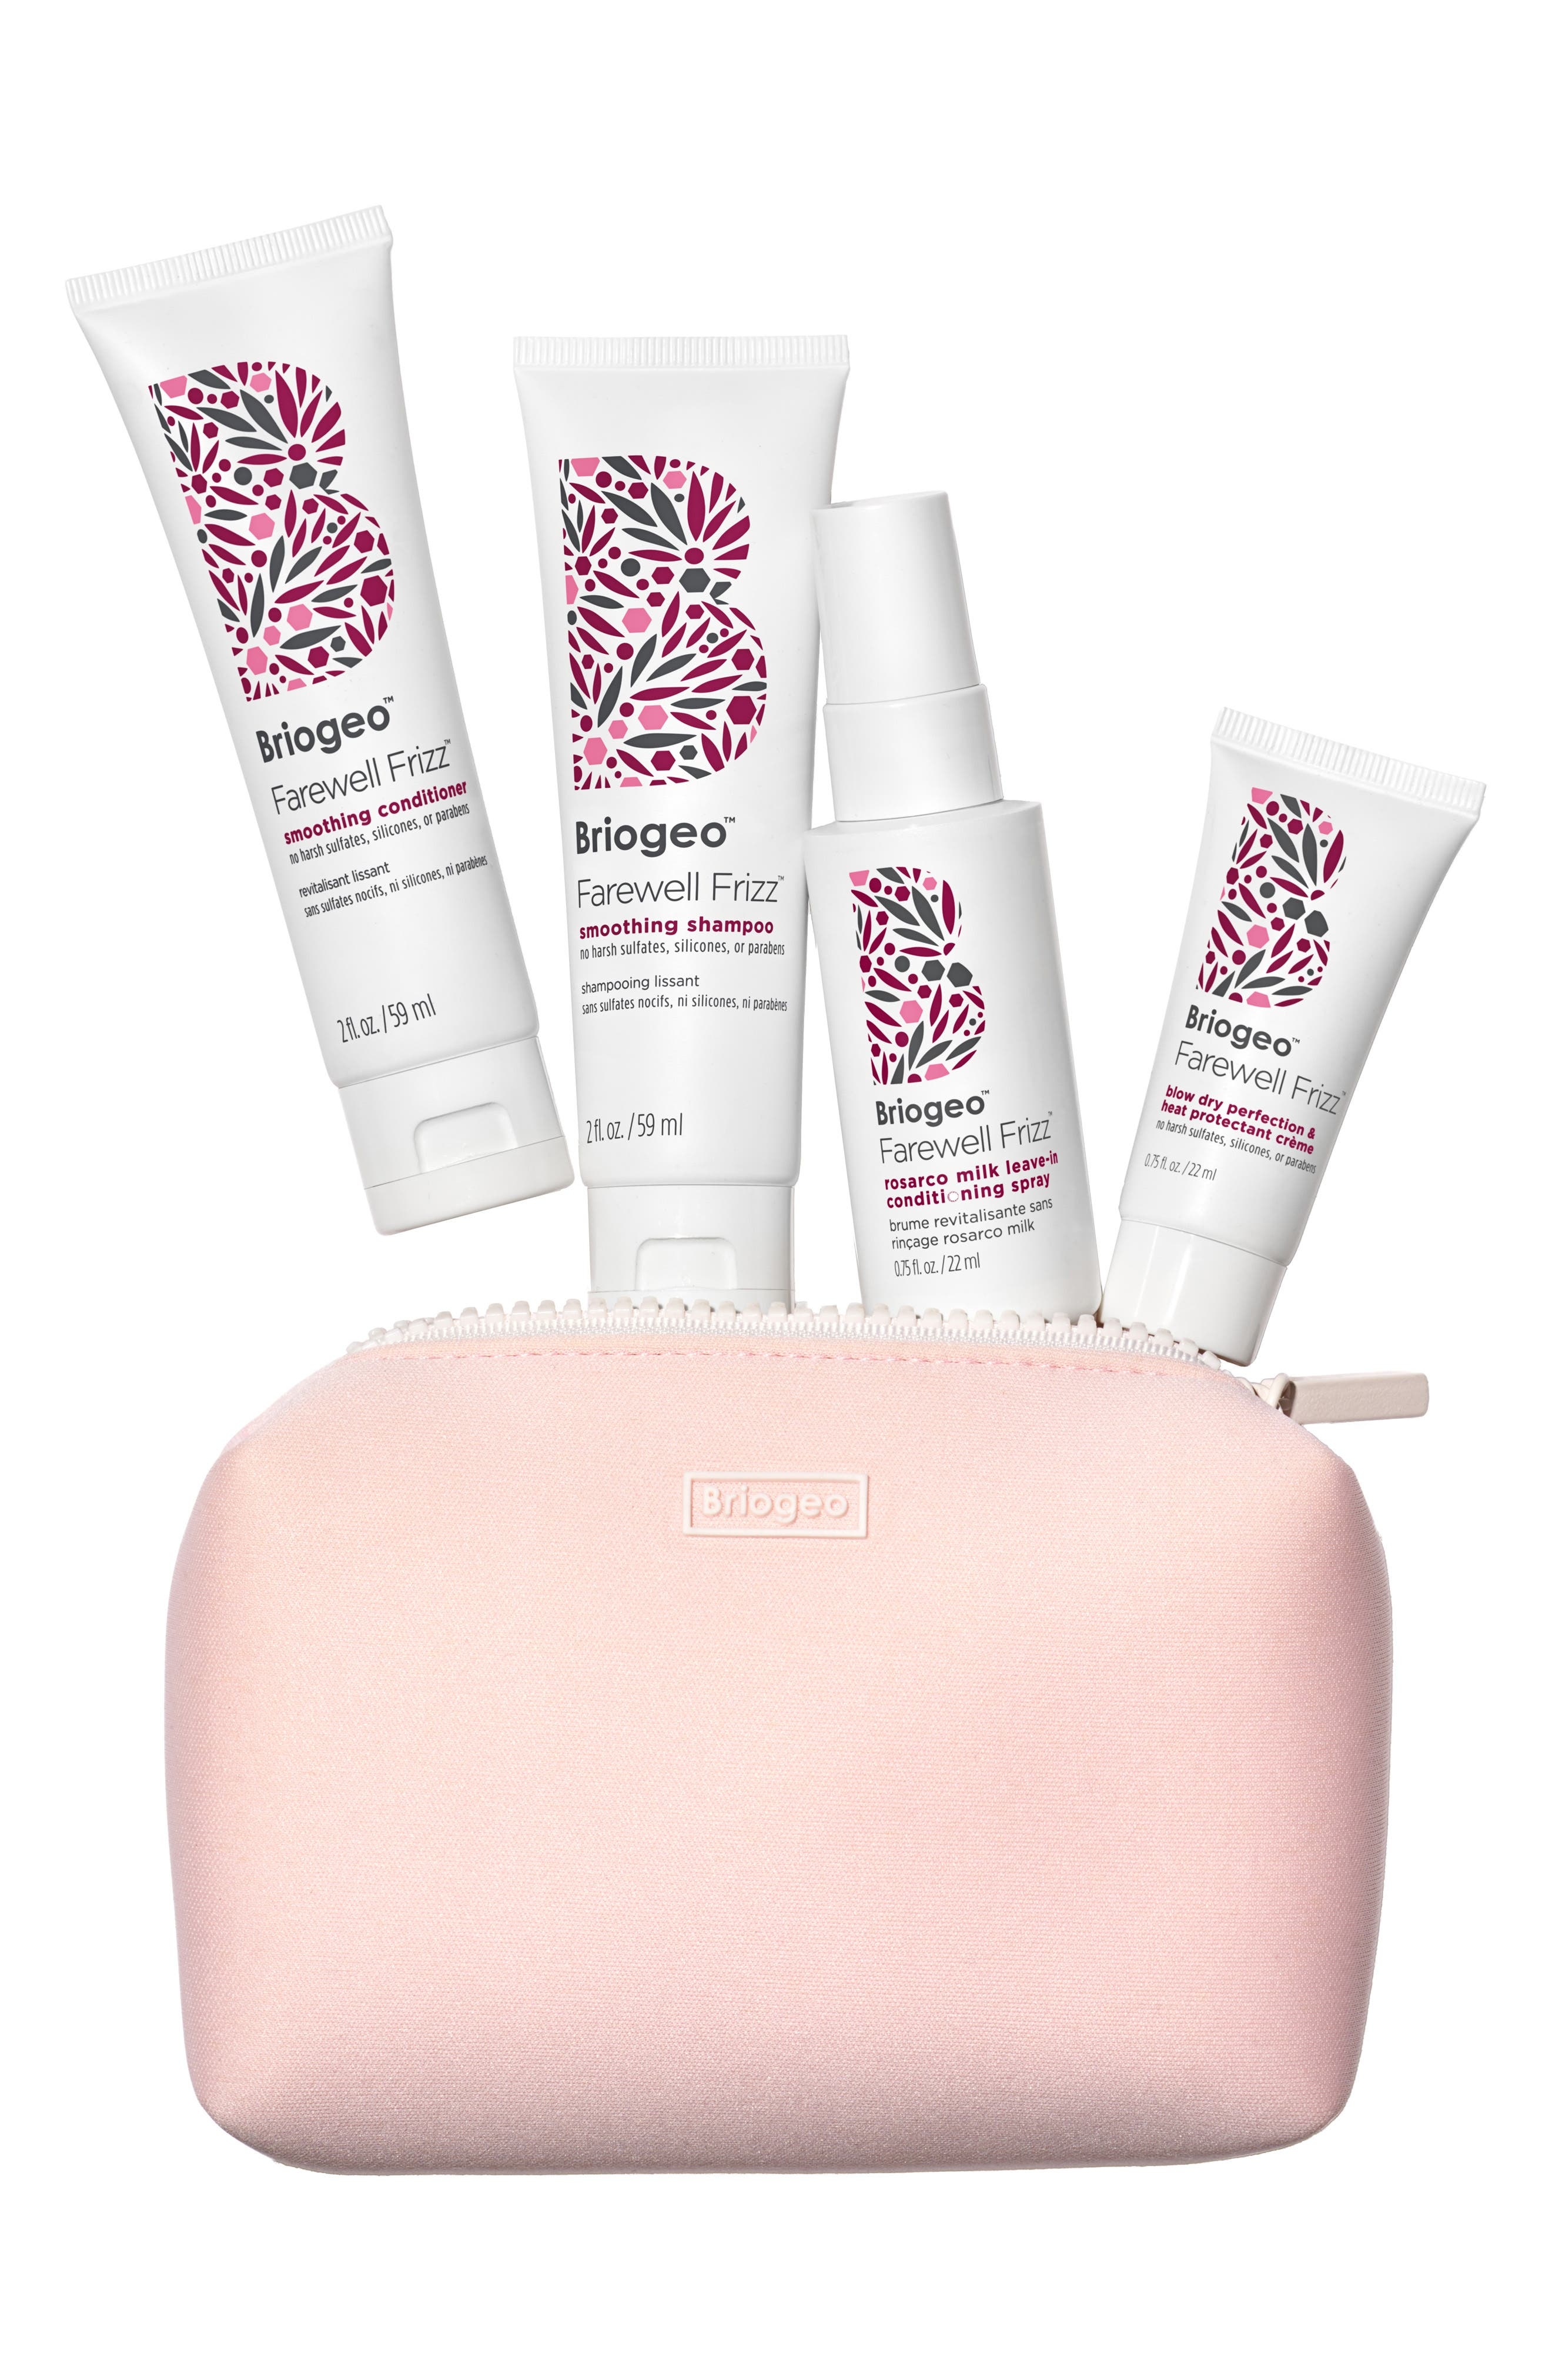 Farewell Frizz Travel Kit by Briogeo